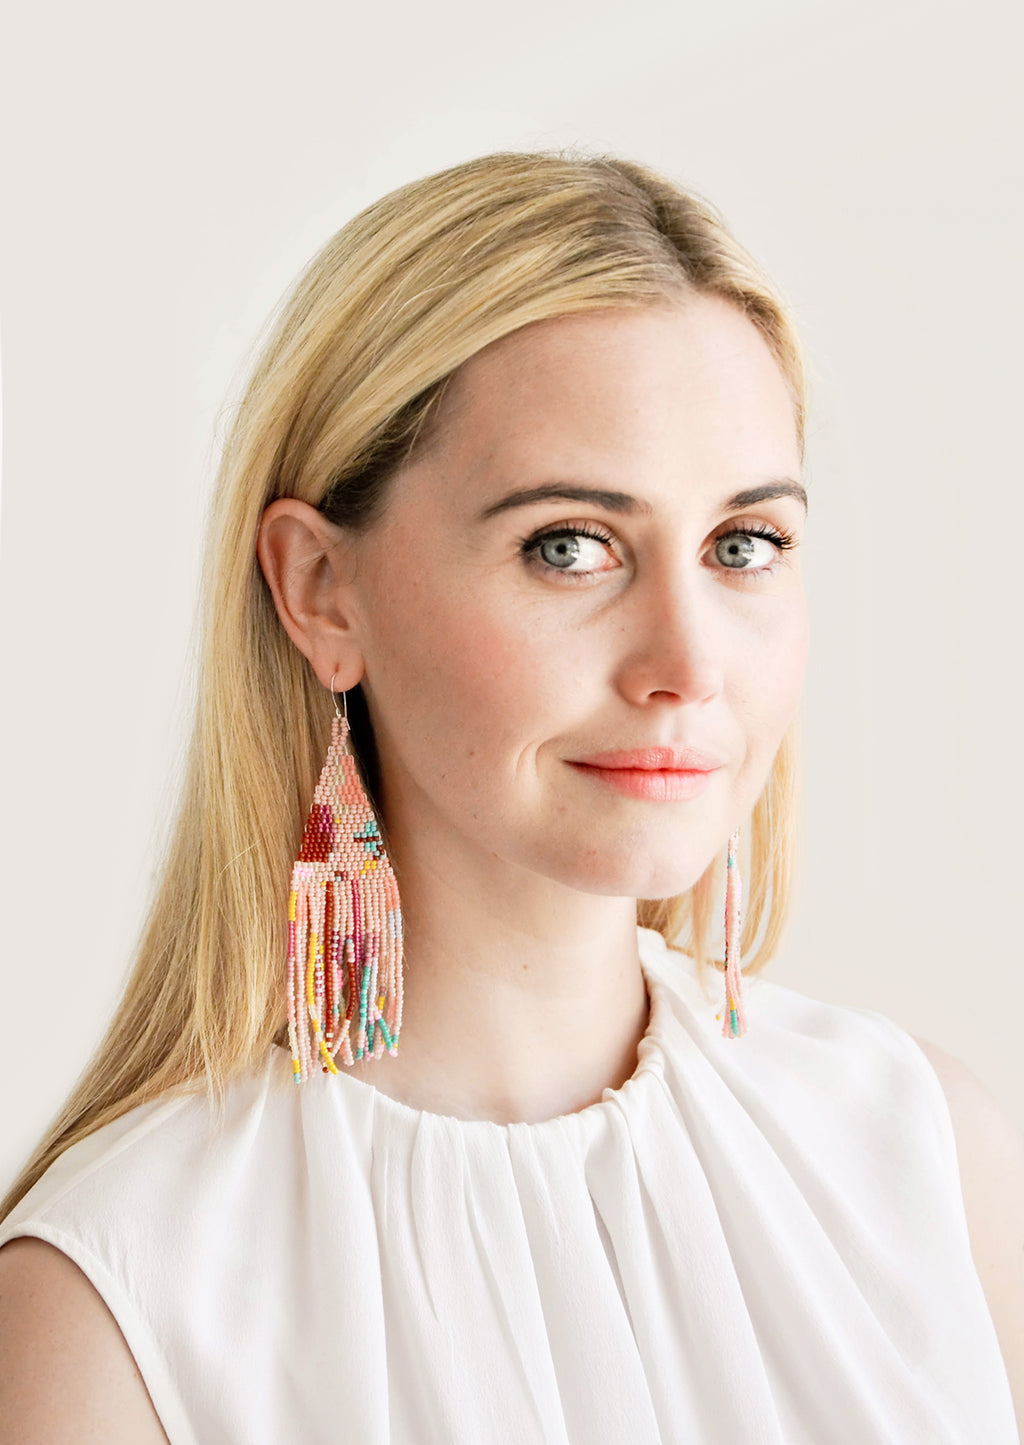 2: Model wears multicolored fringe beaded earrings and white blouse.